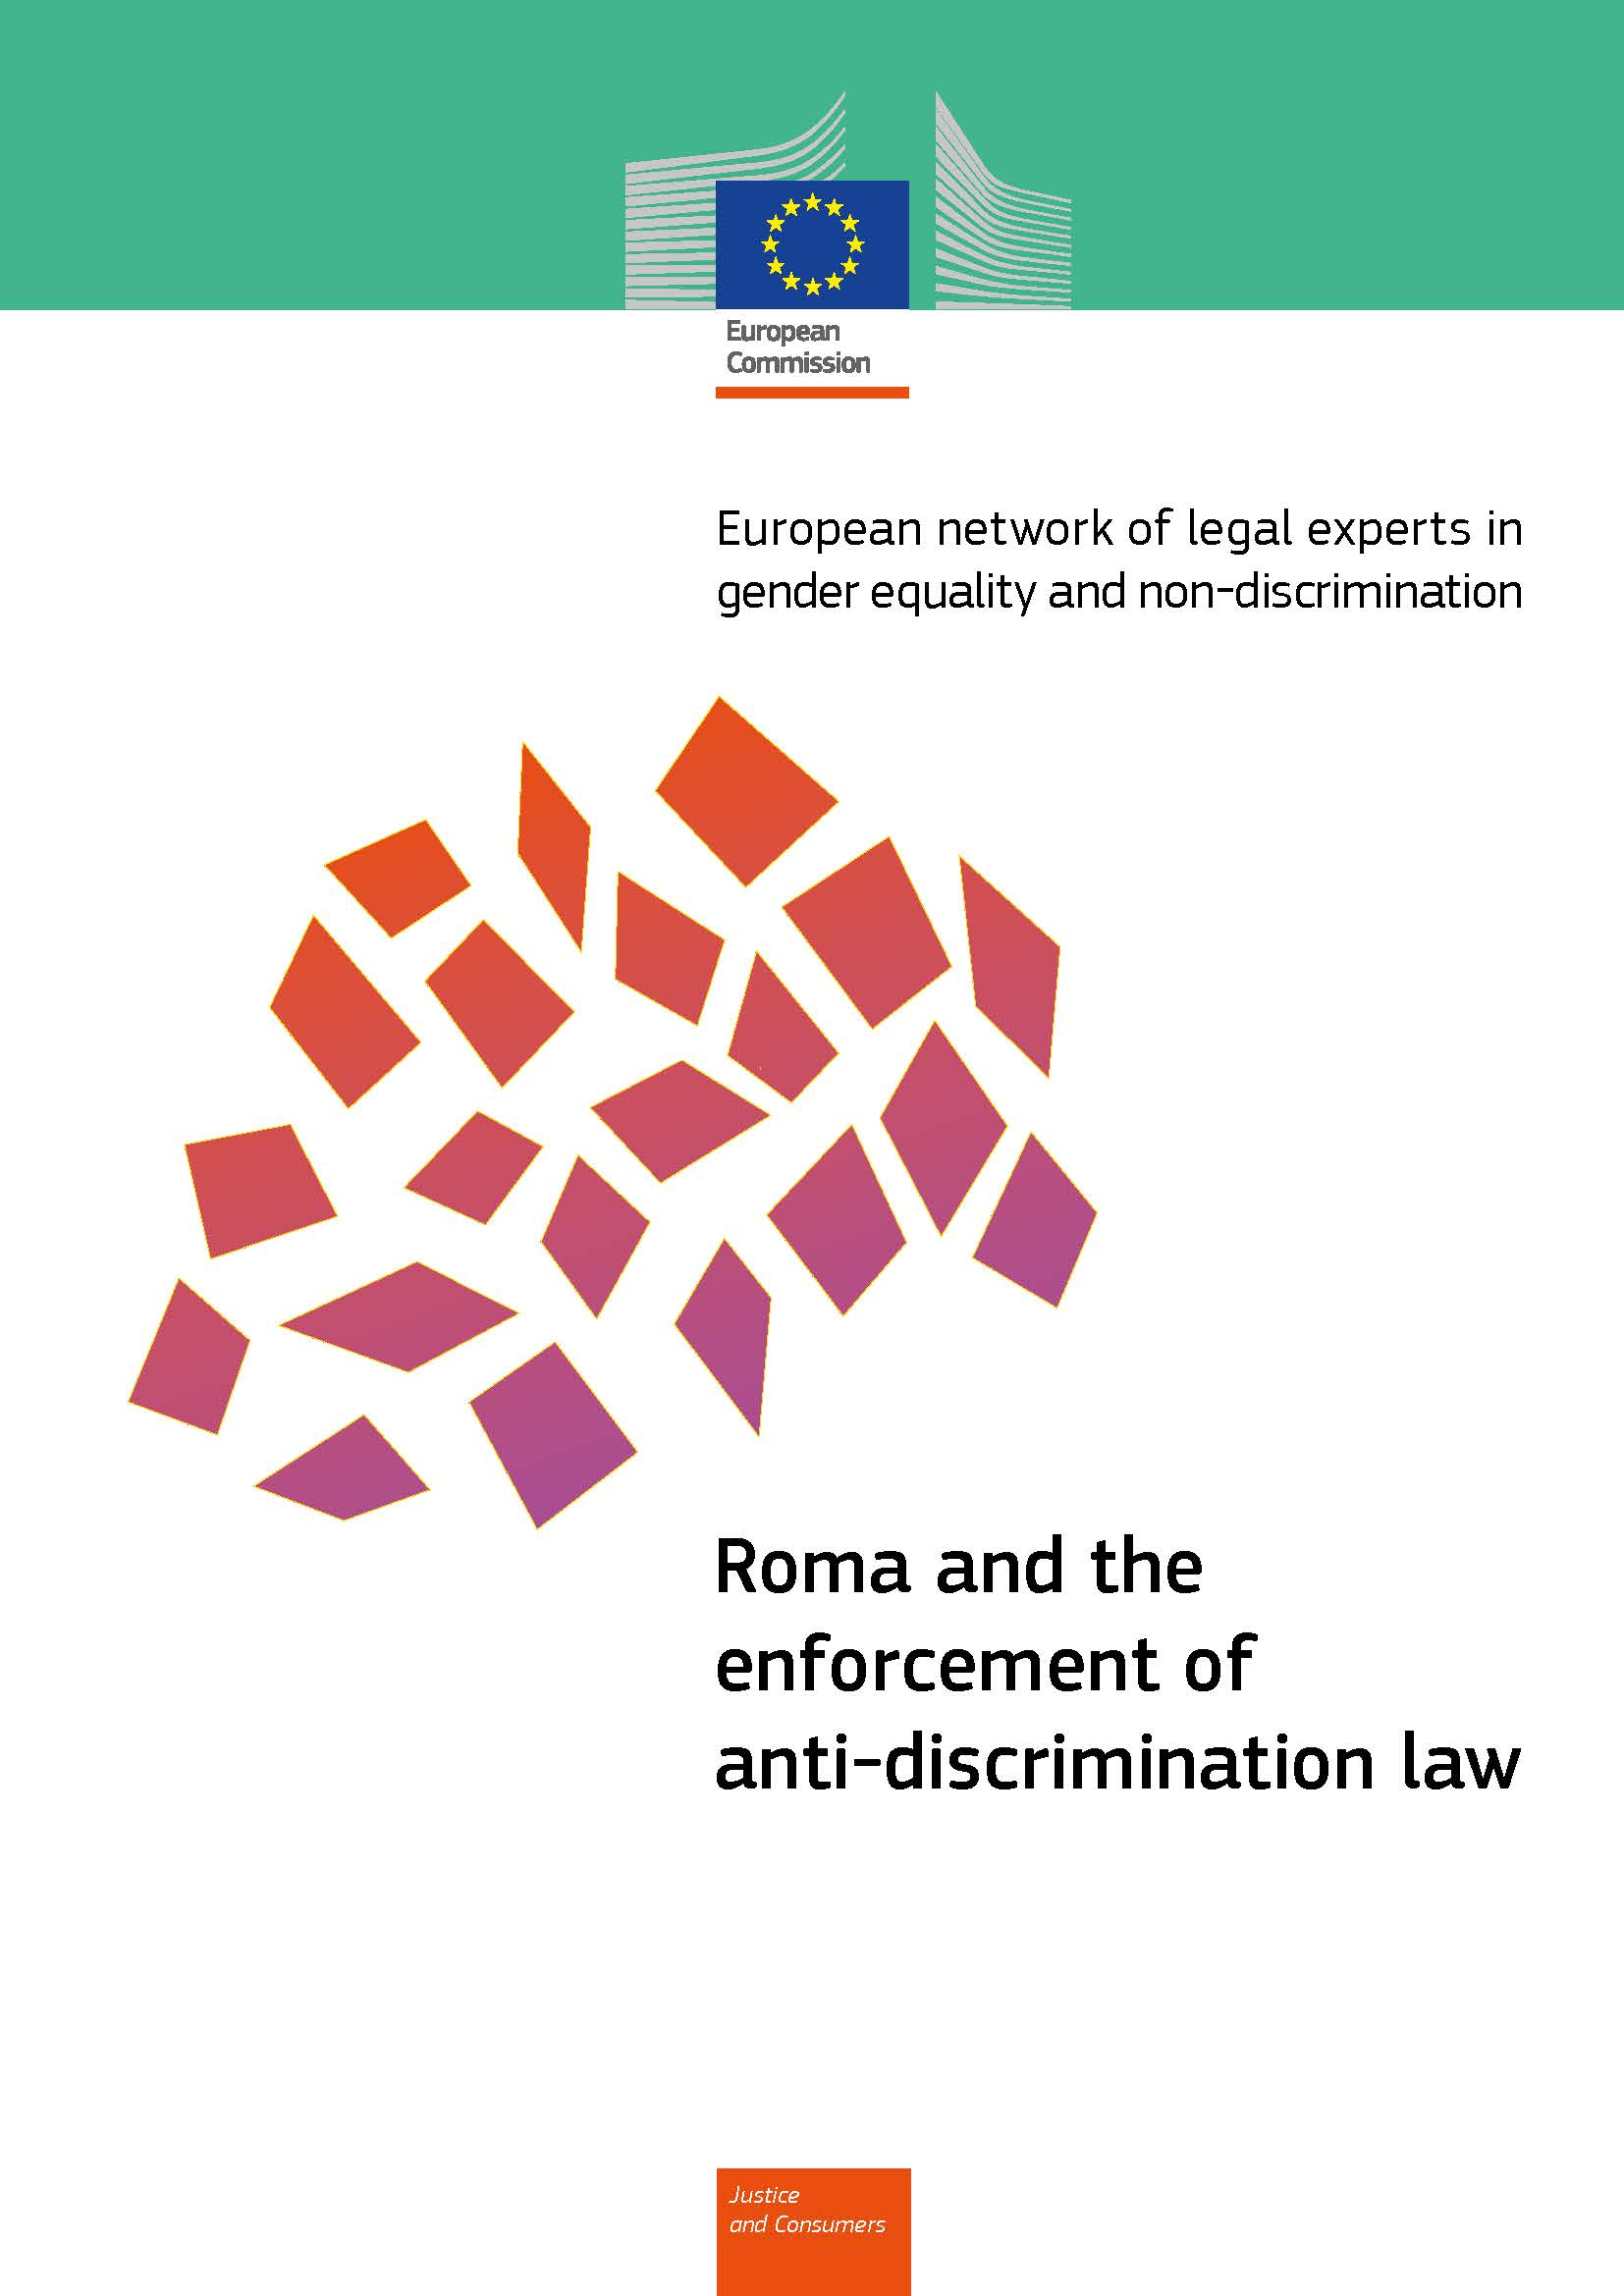 Roma and the enforcement of anti-discrimination law (PDF 349 kB)